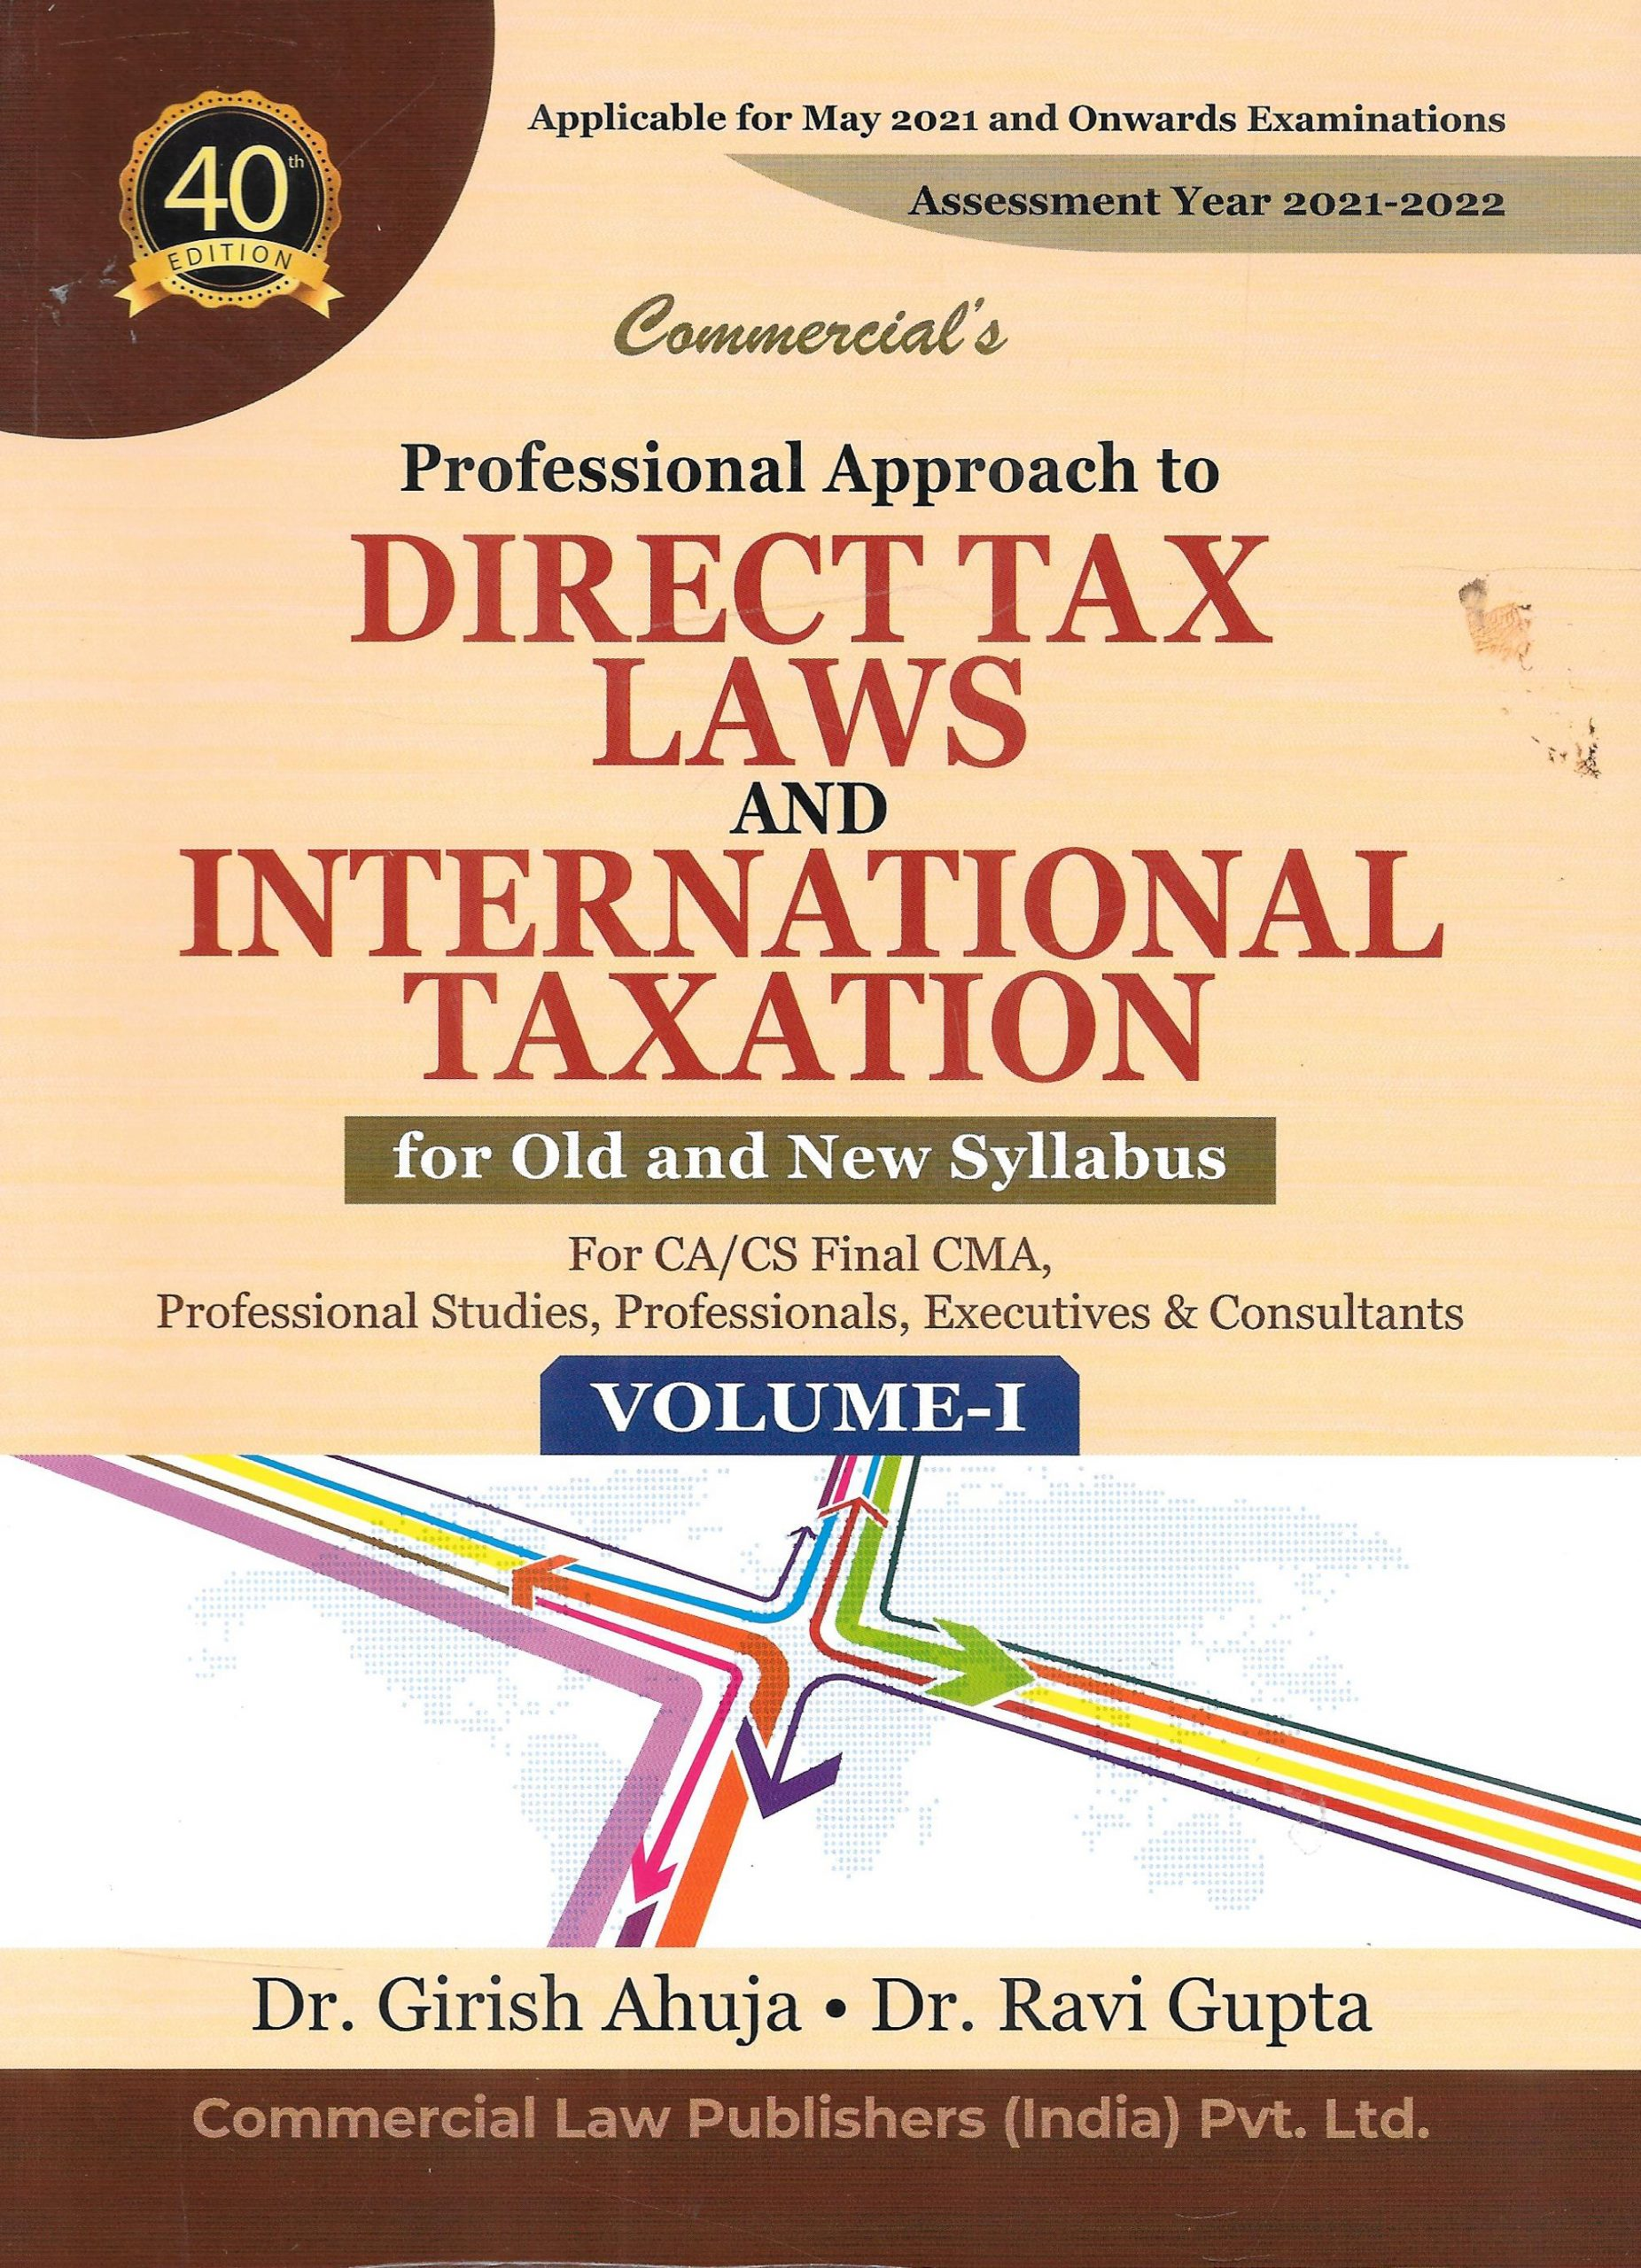 CCH Professional Approach to Direct Tax Laws and International Taxation for Old and New Syllabus for CA/CS/CMA Final By Dr Girish Ahuja Dr Ravi Gupta for 2021